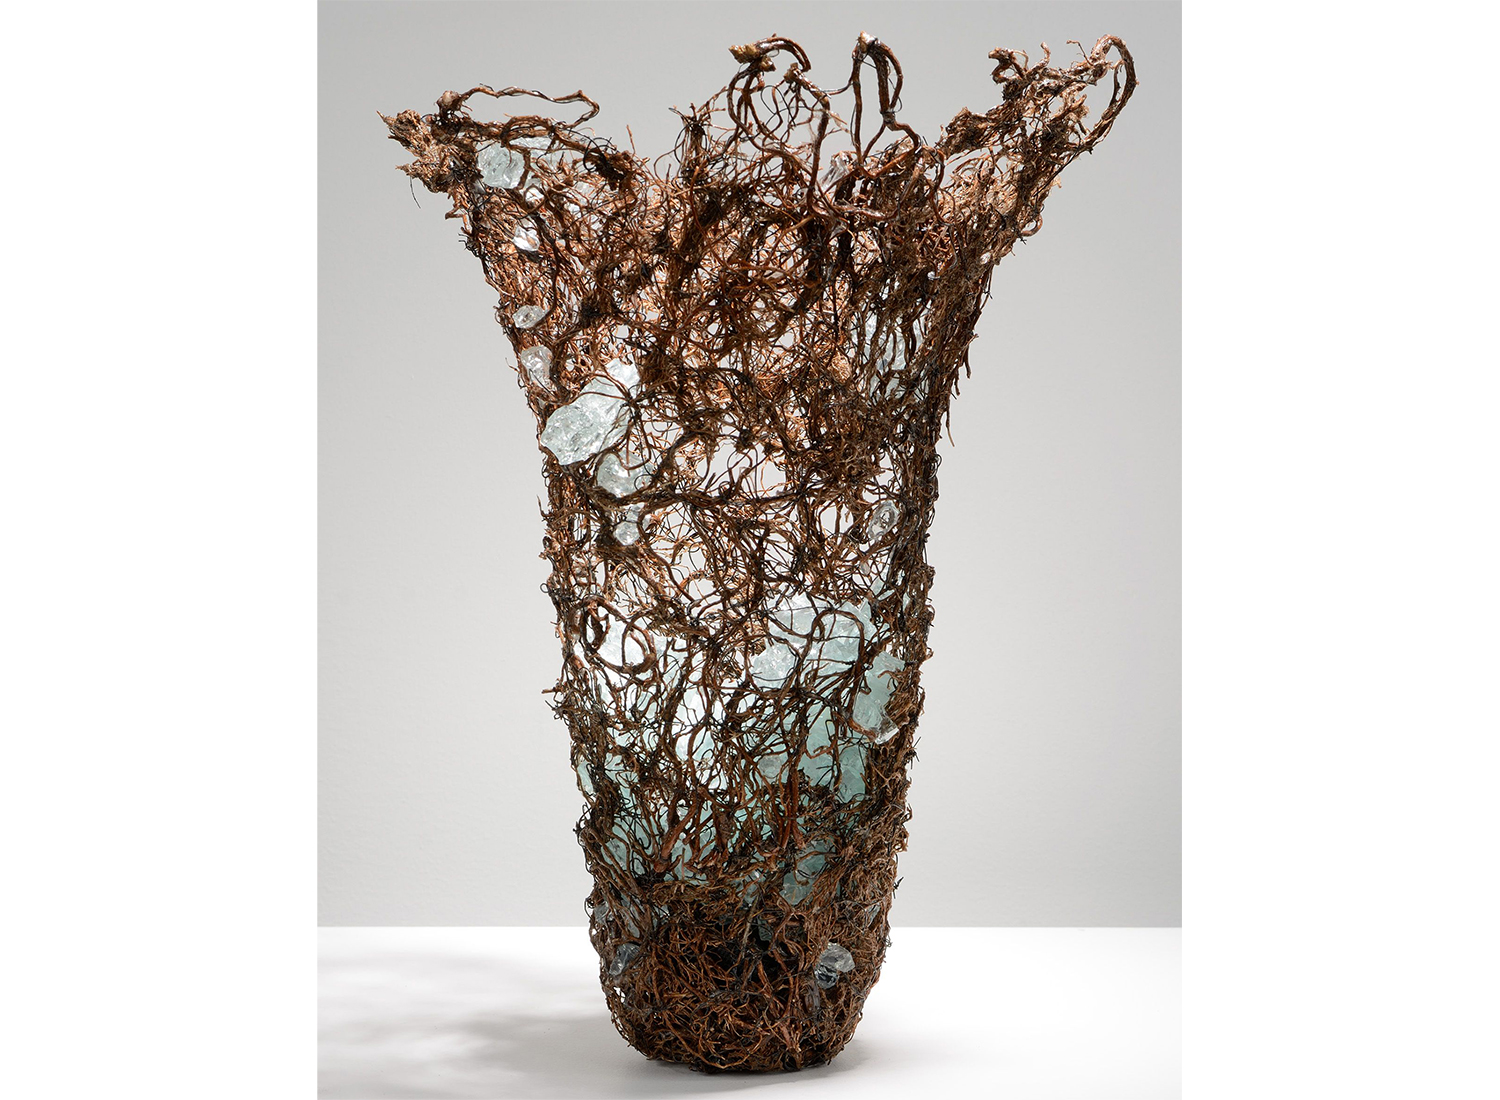 Fragile natural art sculpture from Donna Forma